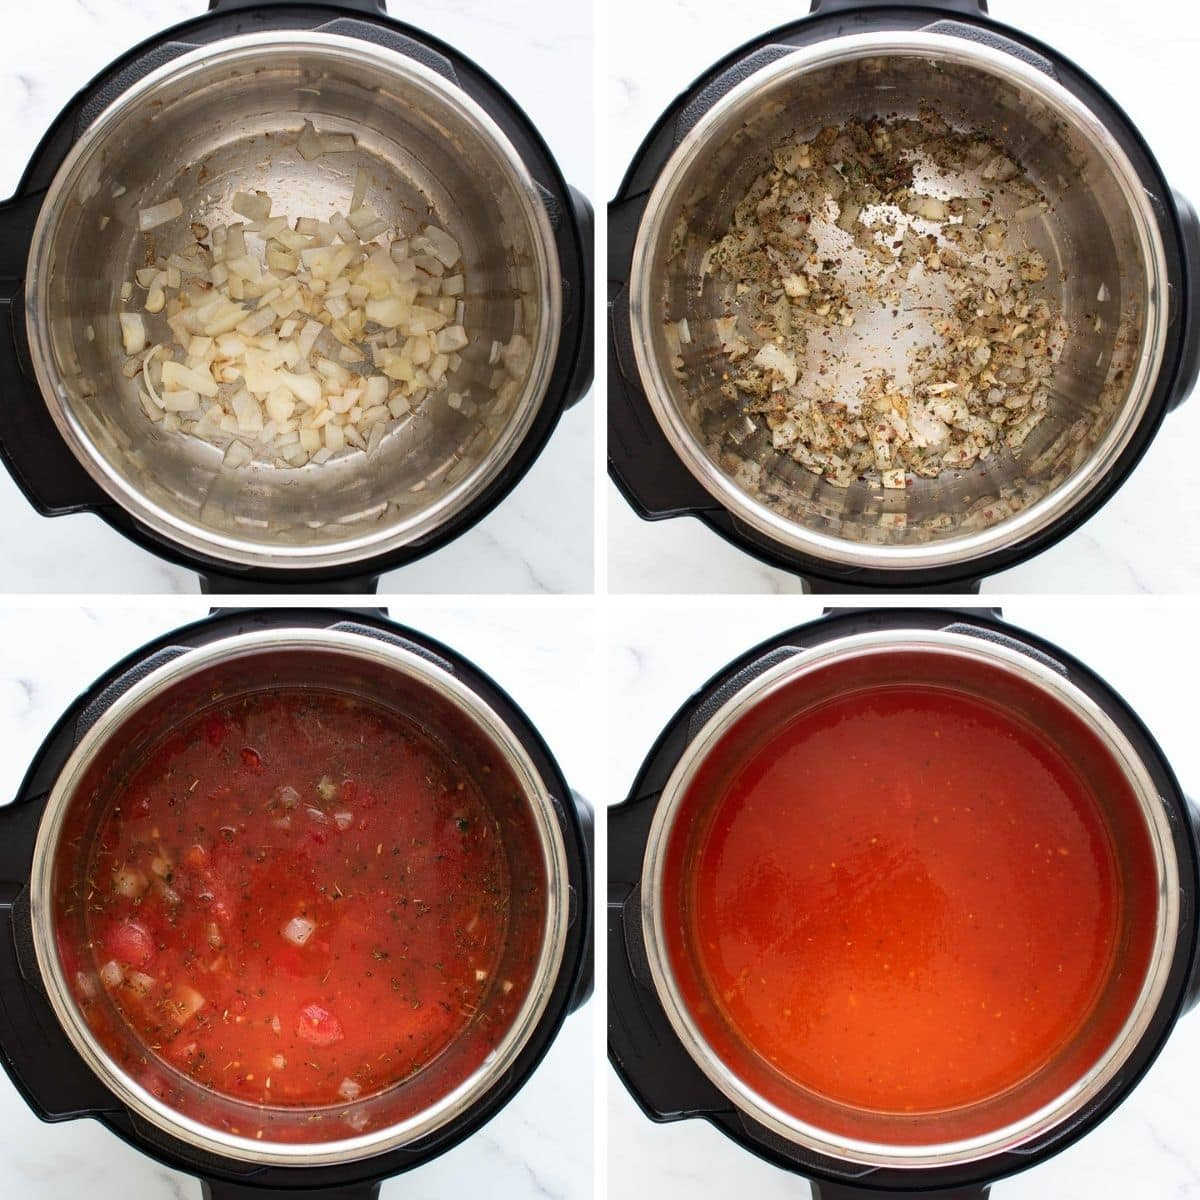 Step by step images showing how to make tomato soup in the instant pot.